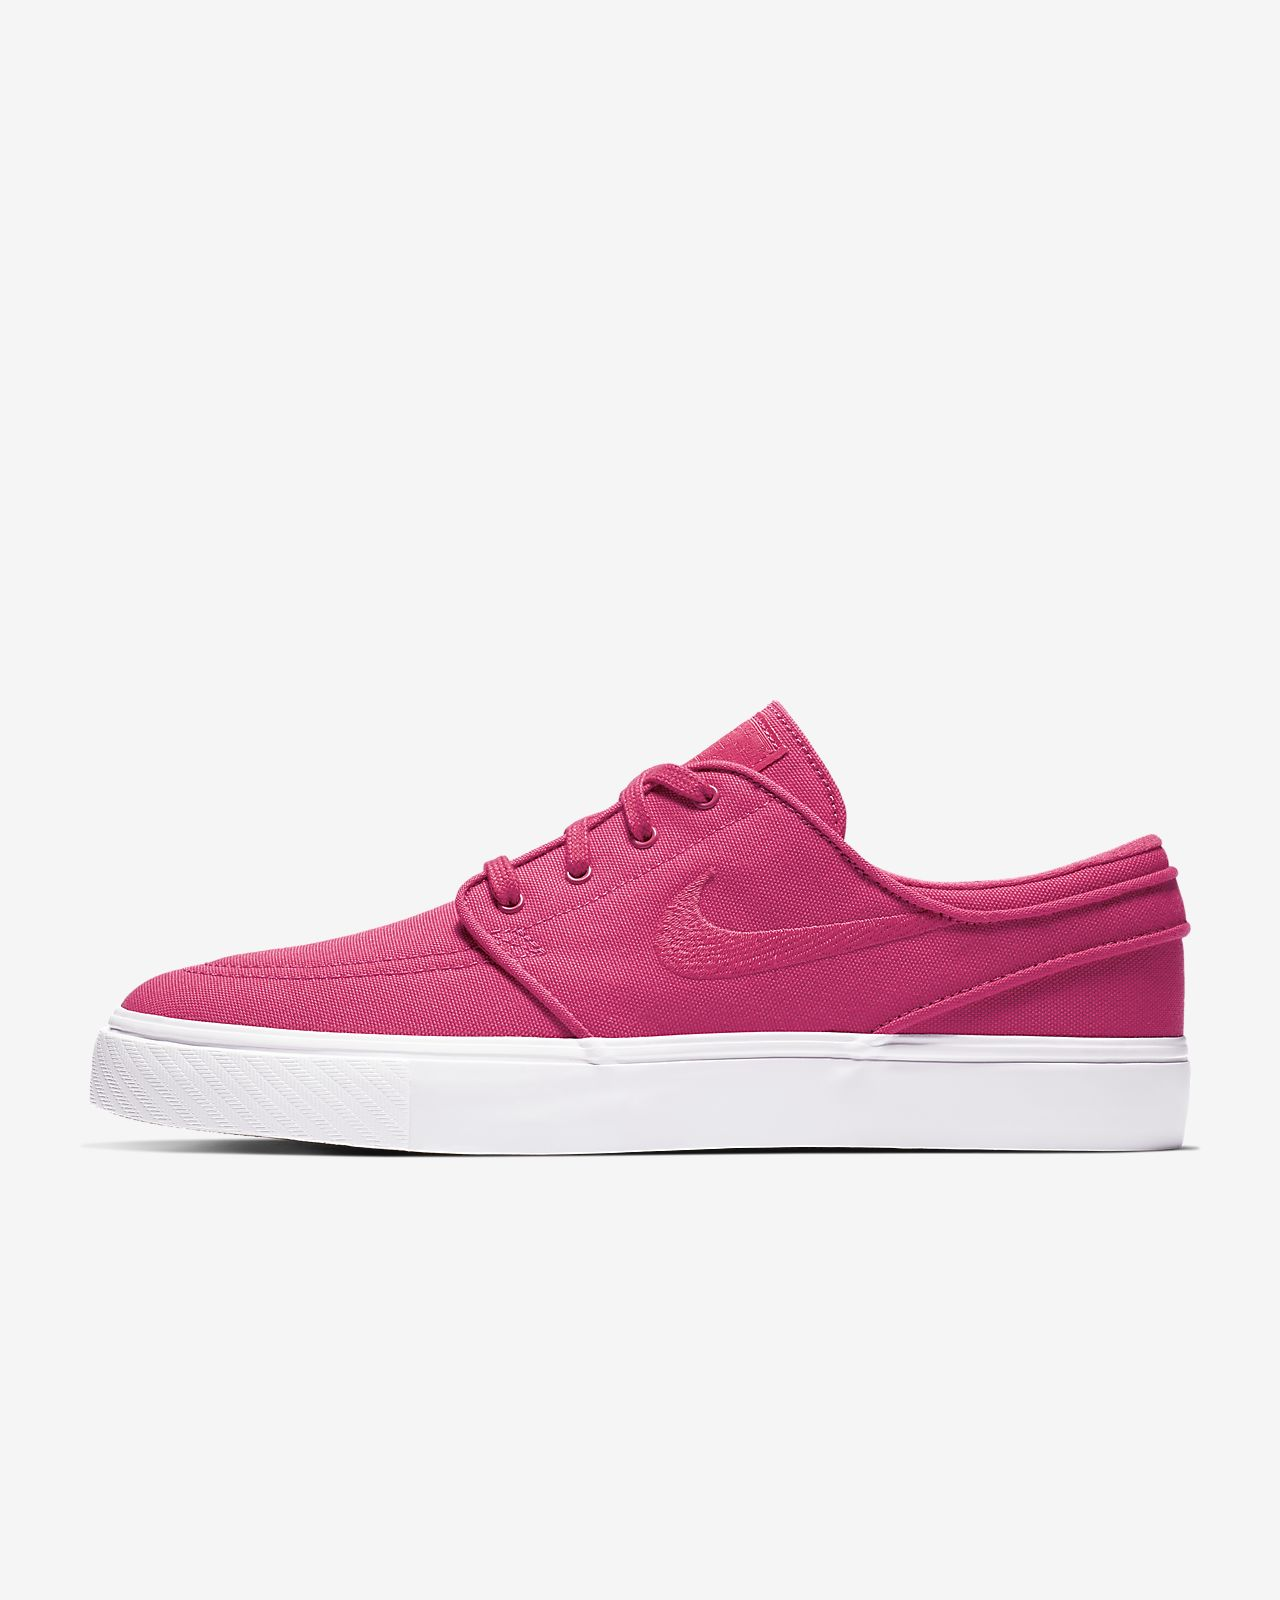 cafaed9e9114 Nike zoom stefan janoski canvas men skate shoe jpg 1280x1600 Pink nike  skate shoes